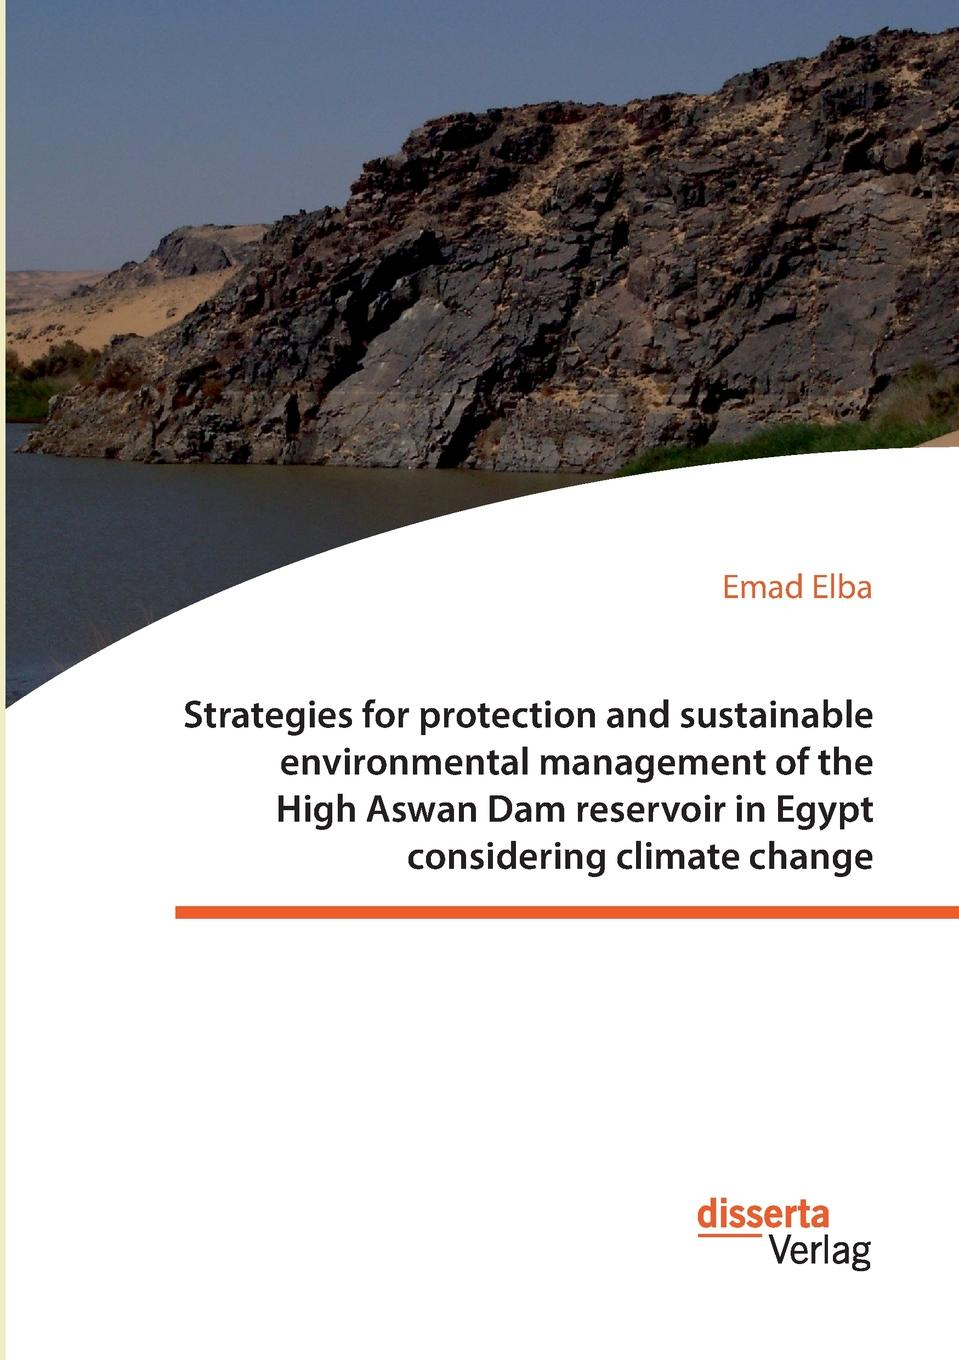 Emad Elba Strategies for protection and sustainable environmental management of the High Aswan Dam reservoir in Egypt considering climate change